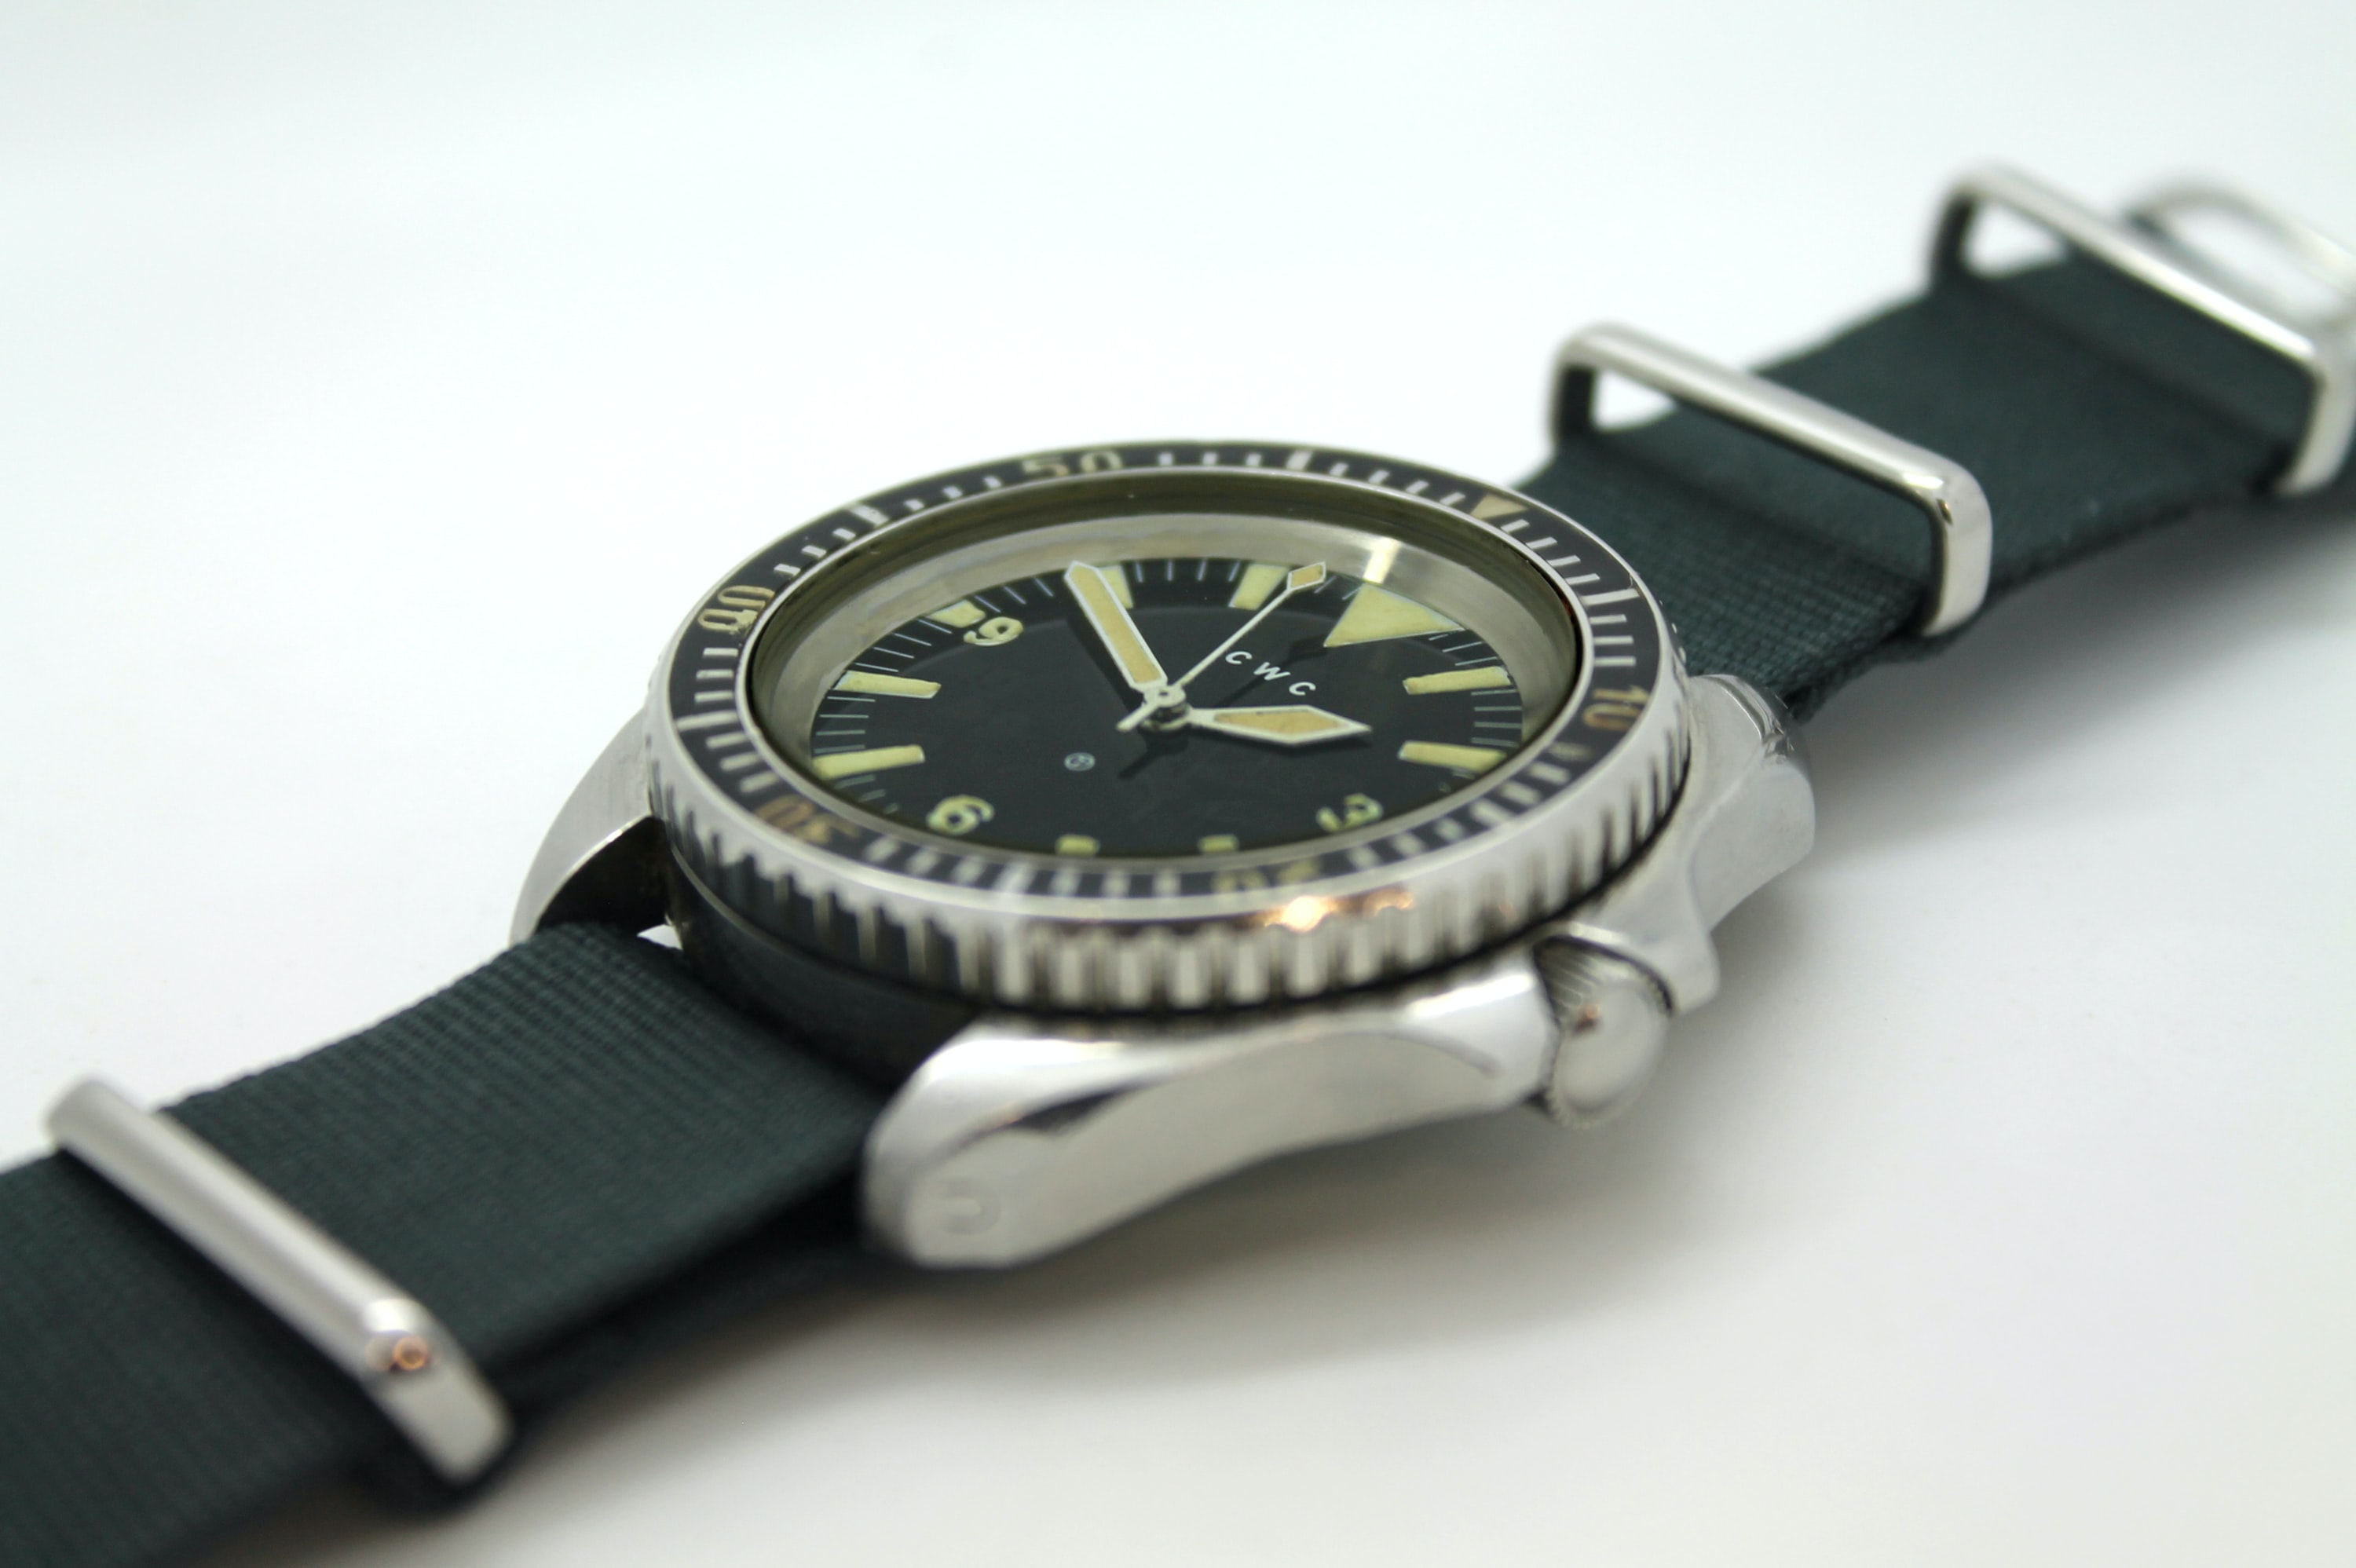 cwc dive watch automatic. Historical Perspectives: CWC: The Watch That Replaced The MilSub Historical Perspectives: CWC: The Watch That Replaced The MilSub autodiver3